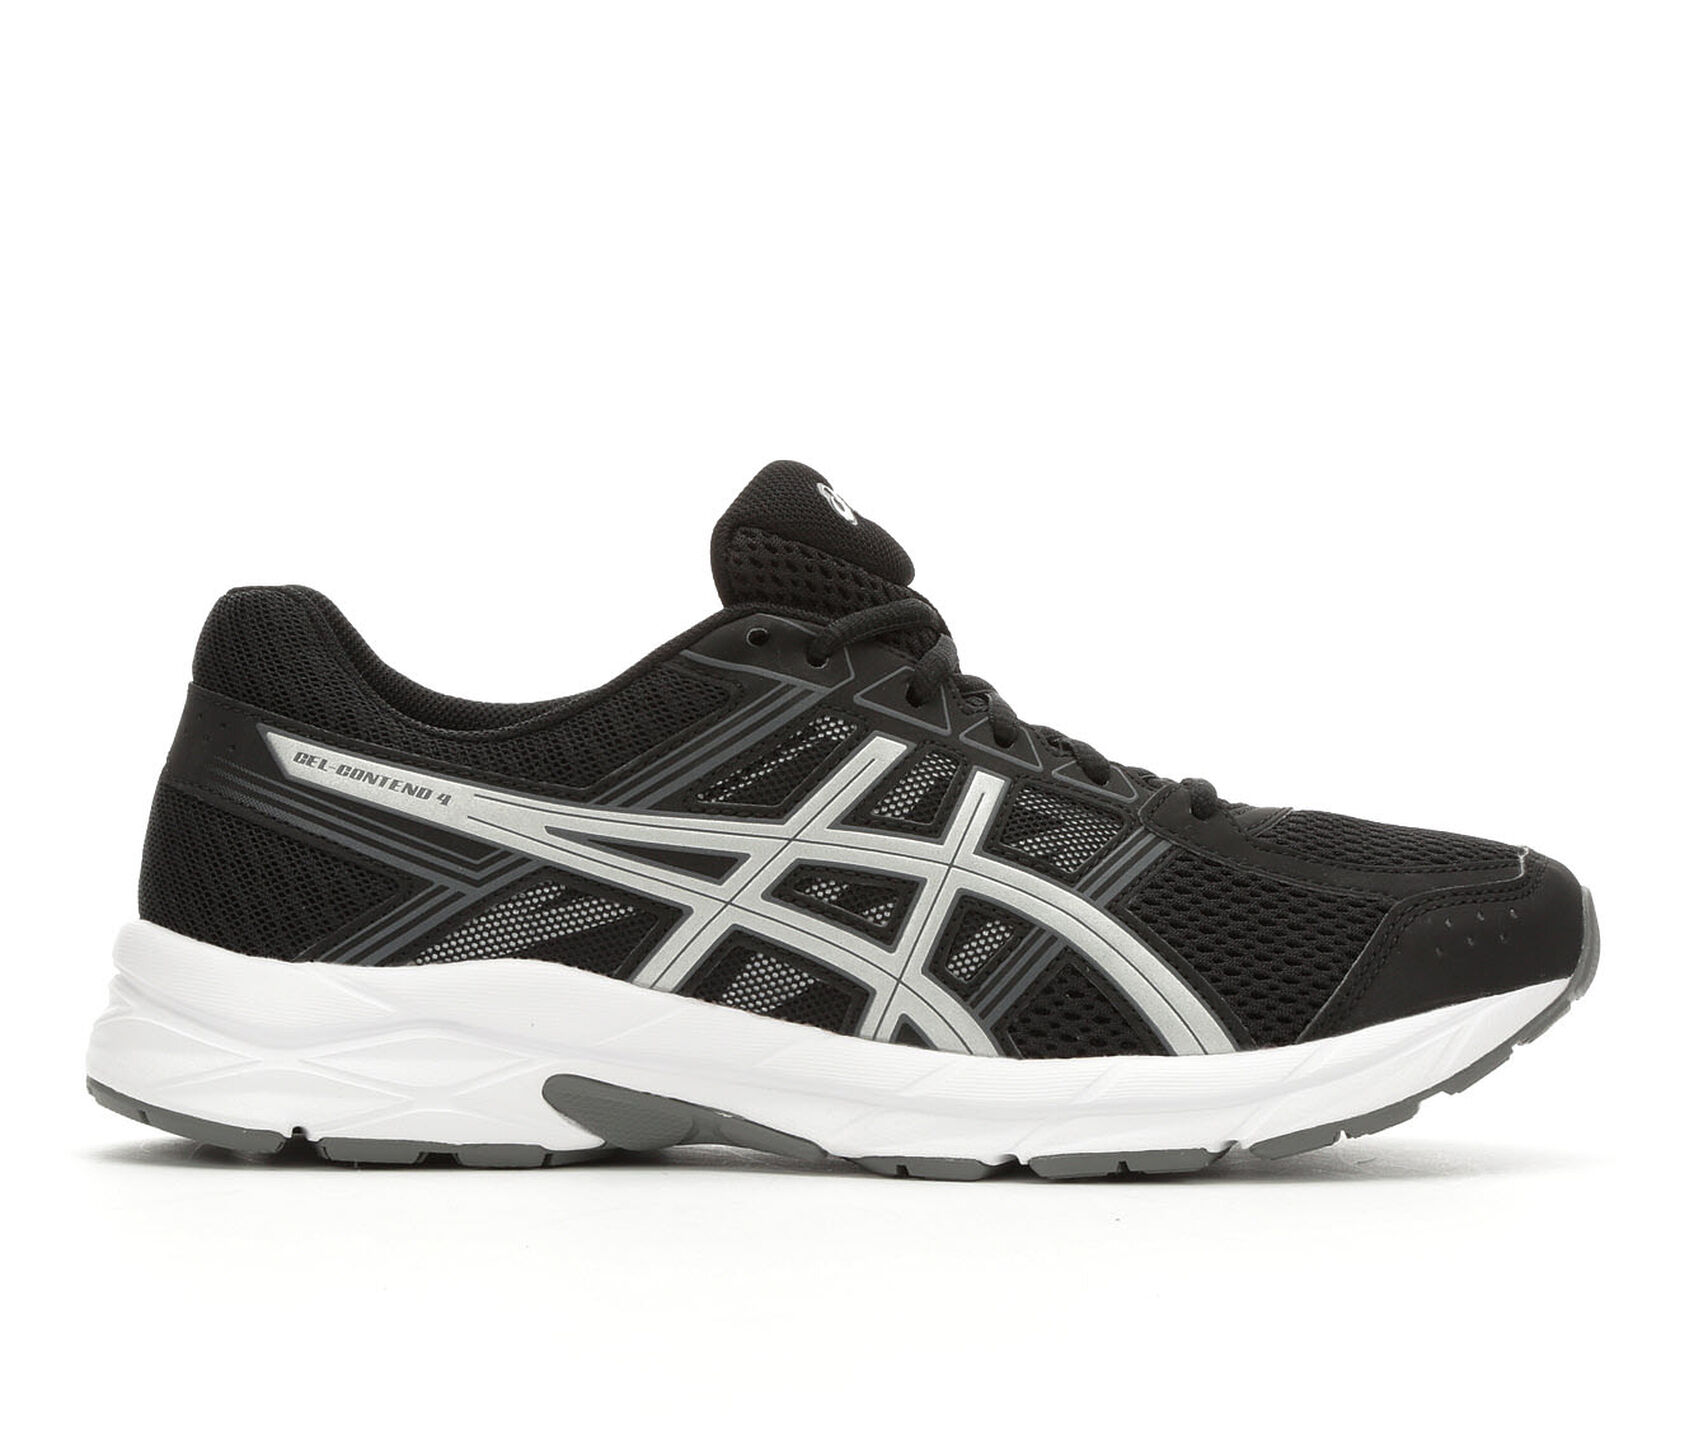 a77775481aa9 ... ASICS Gel Contend 4 Running Shoes. Previous